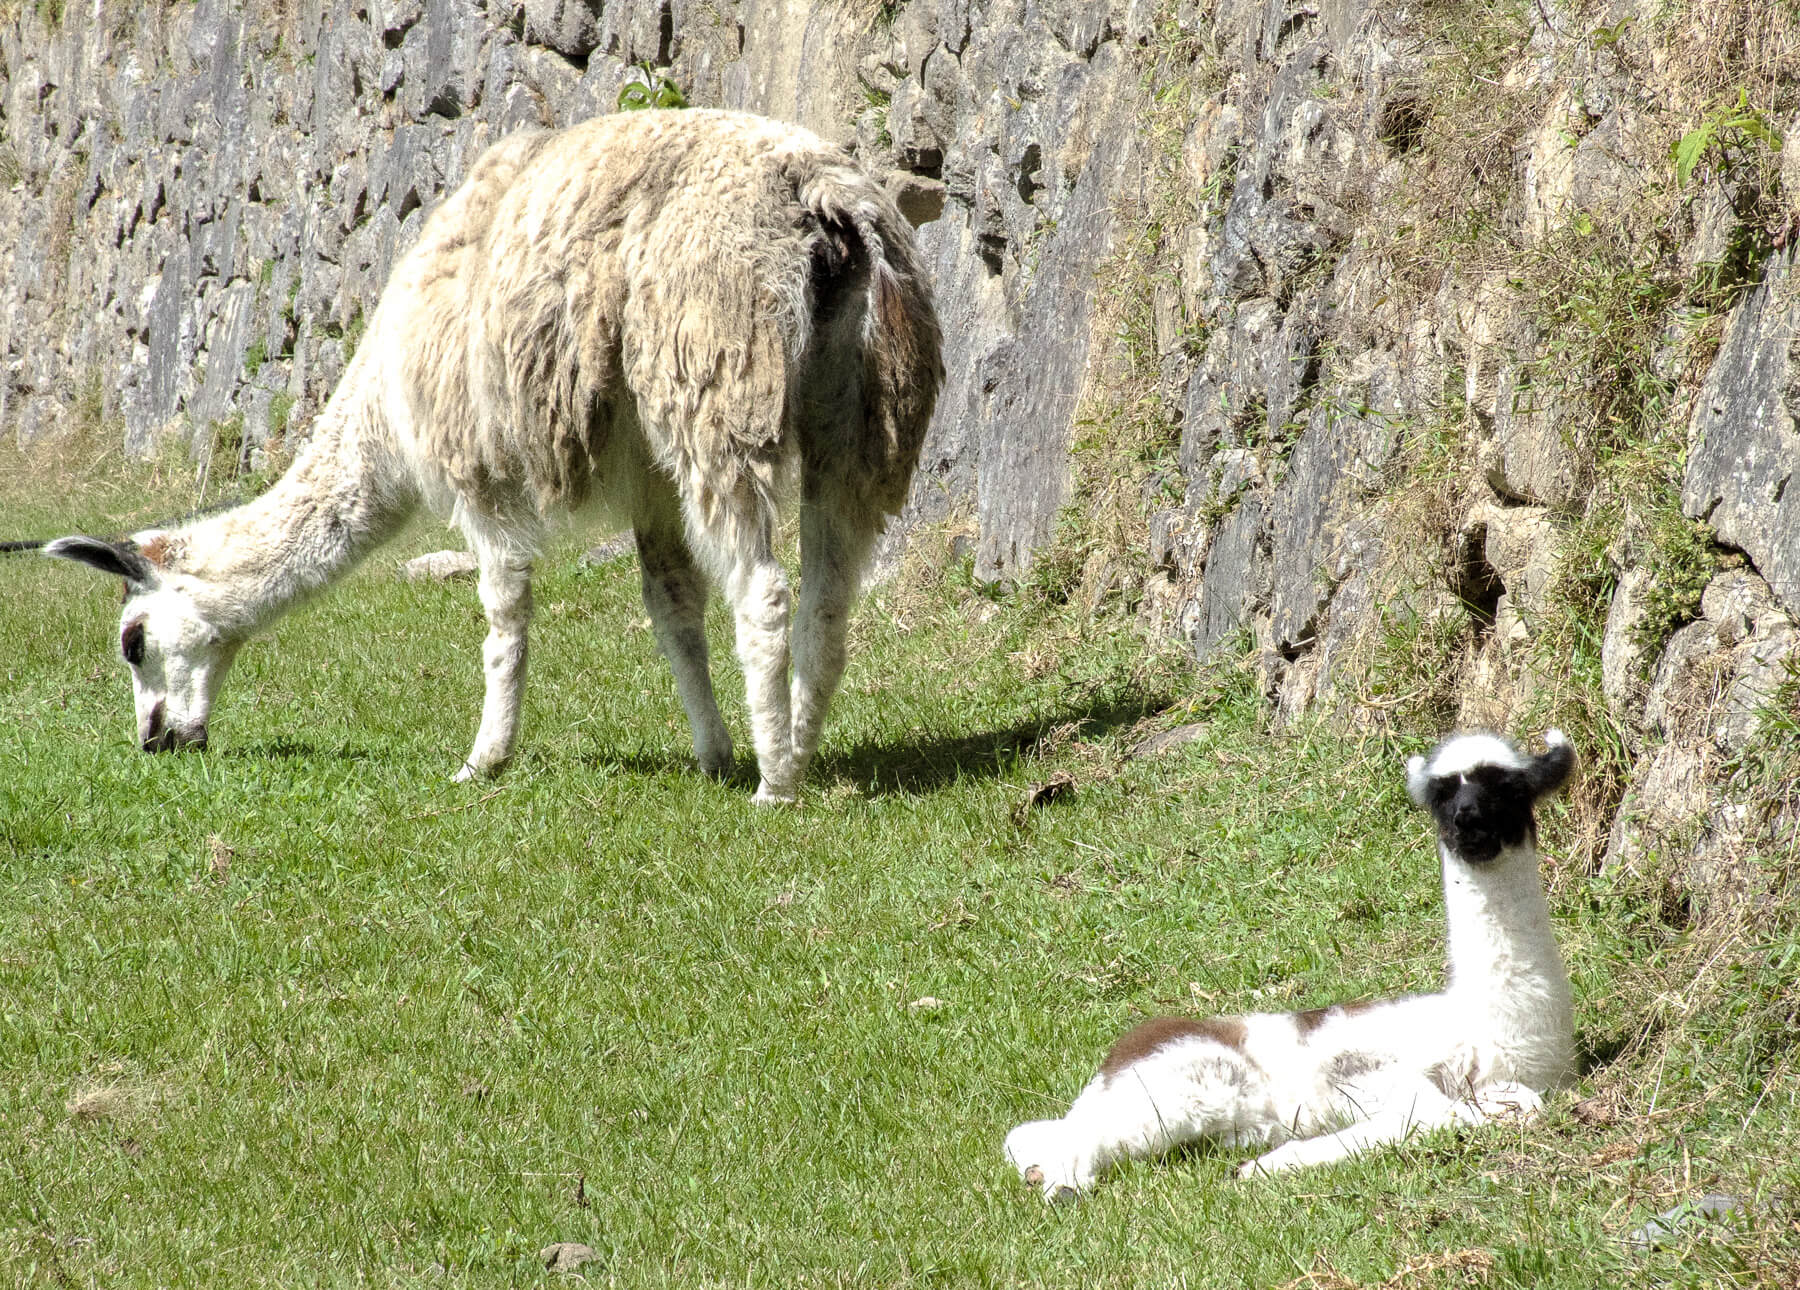 a shaggy white llama eating grass with her fluffy baby close by